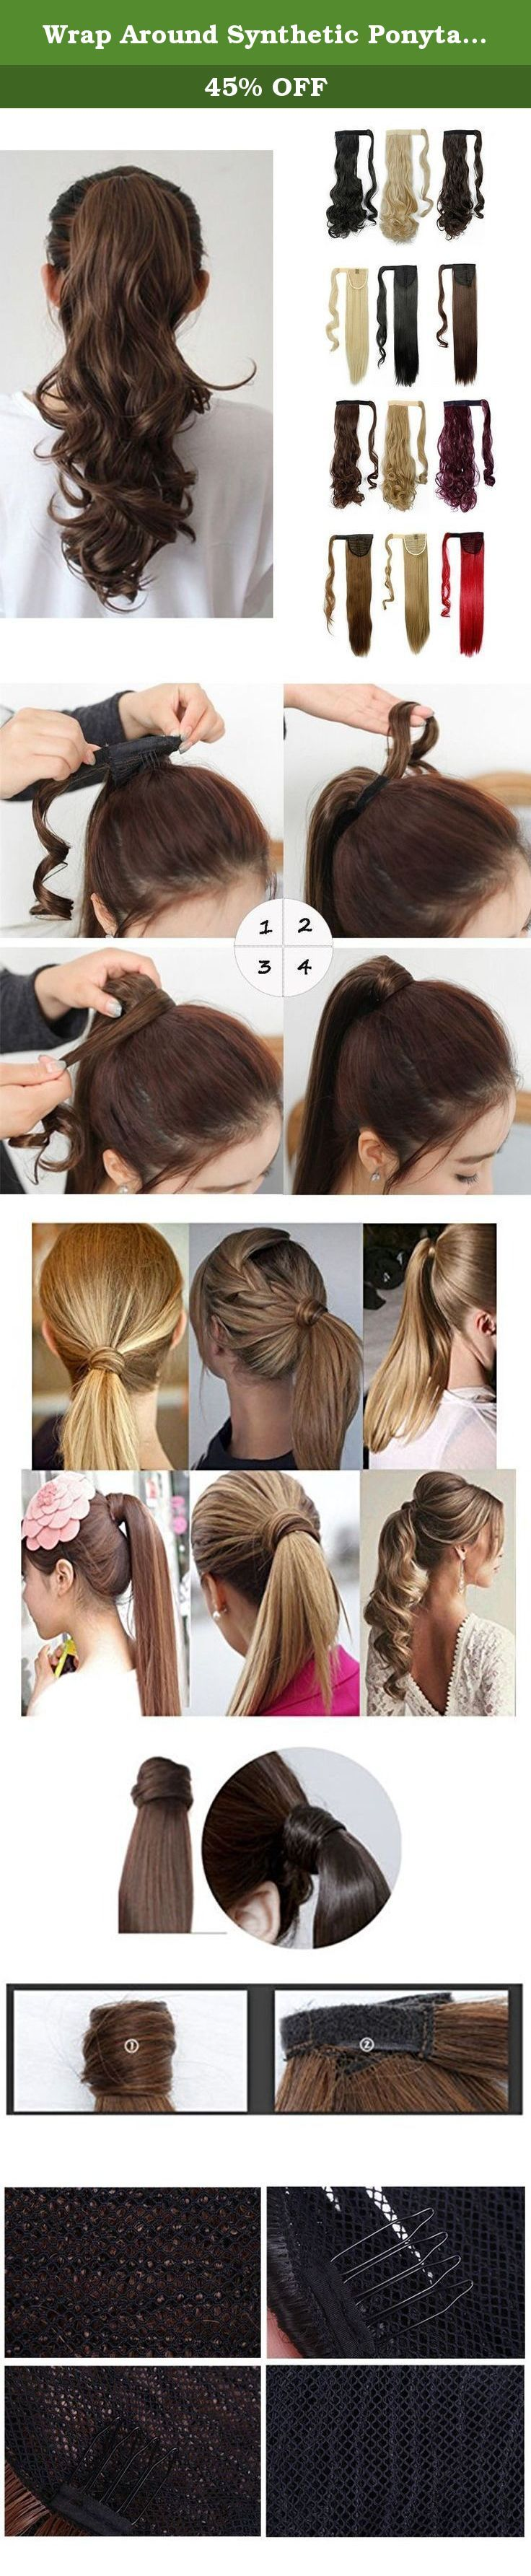 Wrap Around Synthetic Ponytail One Piece Heat Resistant Magic Paste Pony Tail Long Wavy Curly Soft Silky for Women Lady Girls 17'' / 17 inch (dark brown). Product information Materials: Kanekalon Fiber from Japan(also known as KK wire) Length: 17inch without stretching Suitable Occasions: daily use,Halloween,cosplay,club,concerts,costume,theme parties,bachelorette party,weddings,dating,conventions,masquerades,prom,evening out,carnival,April Fool's Day and any other occasions. Also will be...